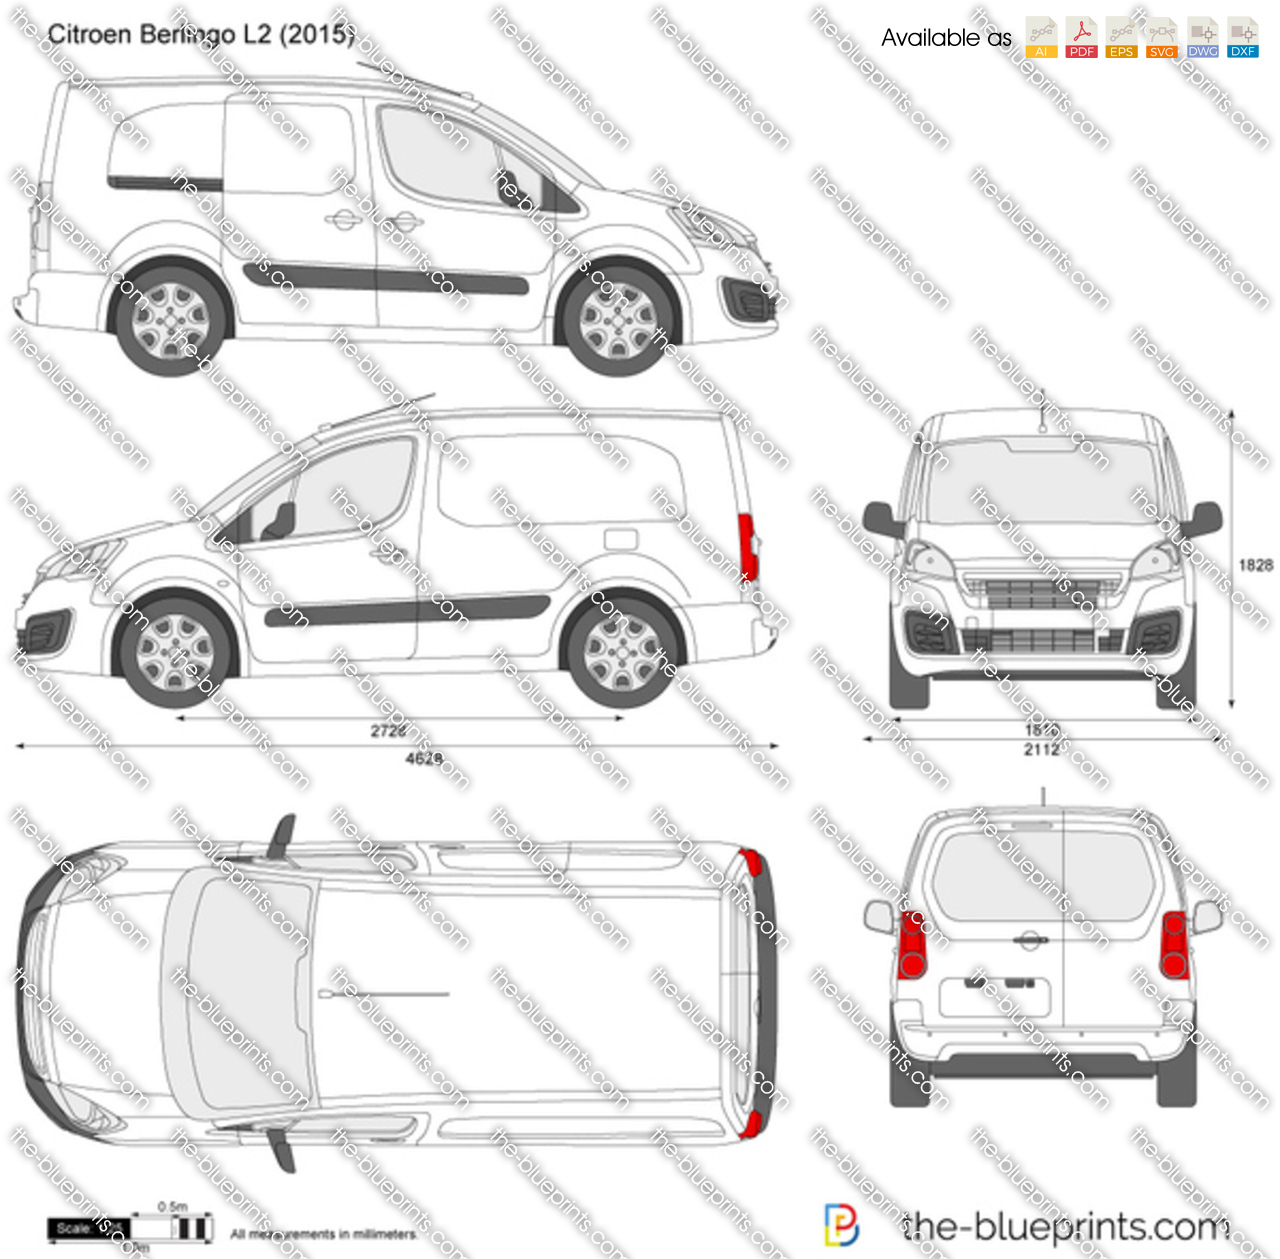 citroen berlingo l2 vector drawing. Black Bedroom Furniture Sets. Home Design Ideas